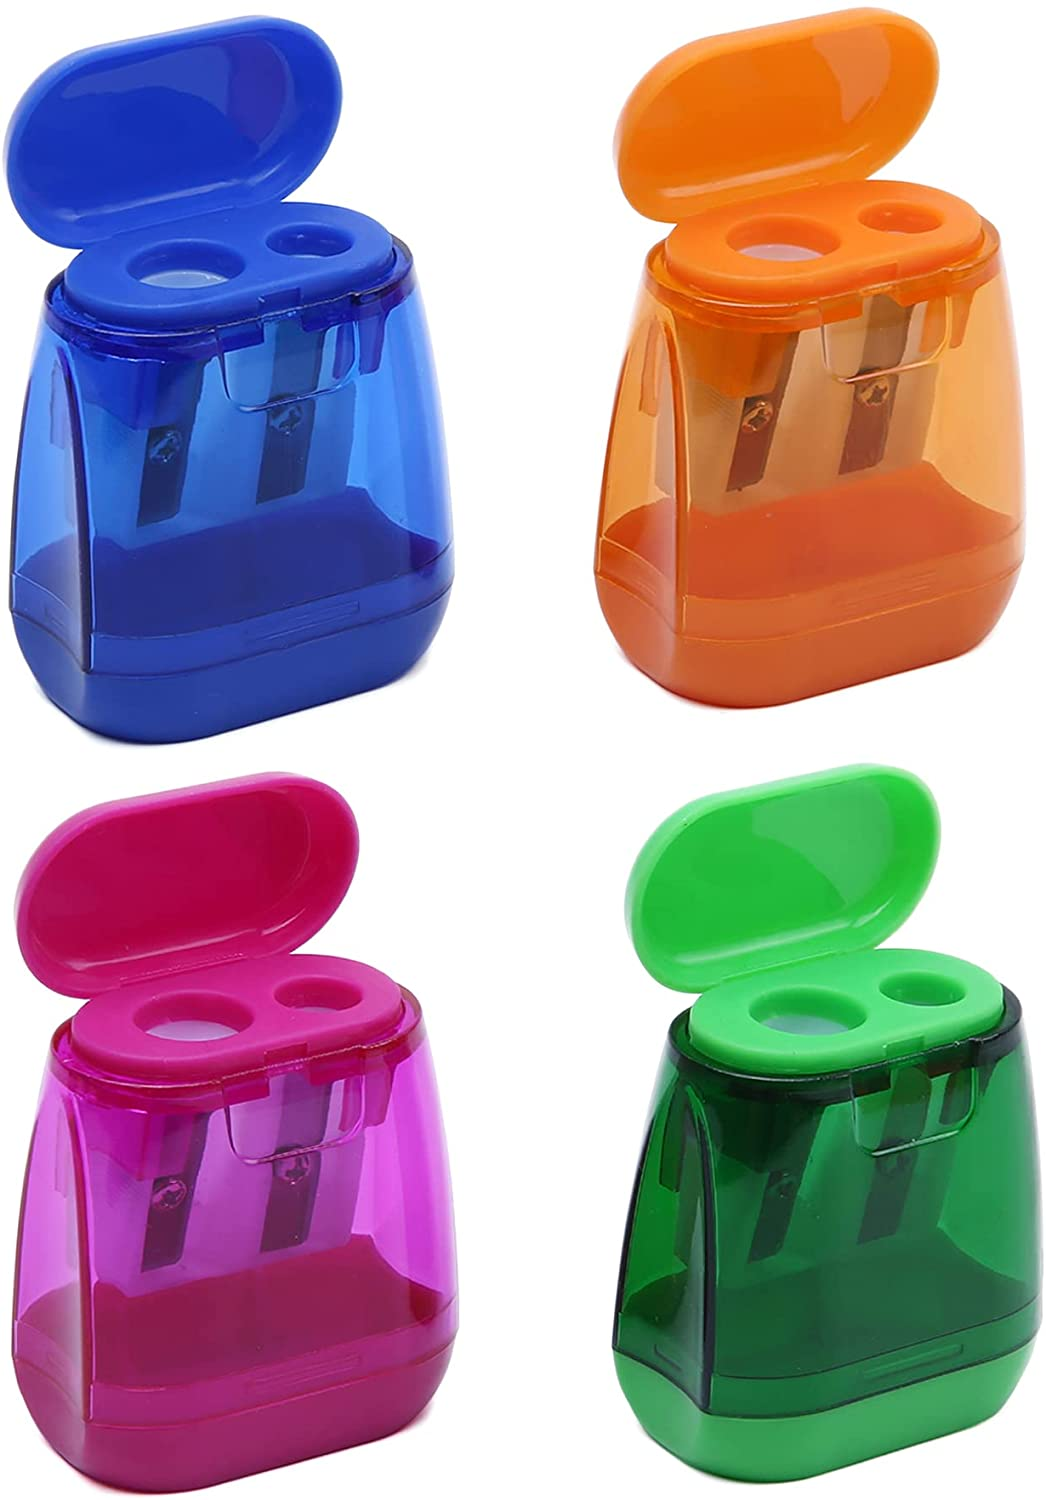 4PCS Manual Max 84% OFF Don't miss the campaign Pencil Sharpener Double Colored Prism Holes S